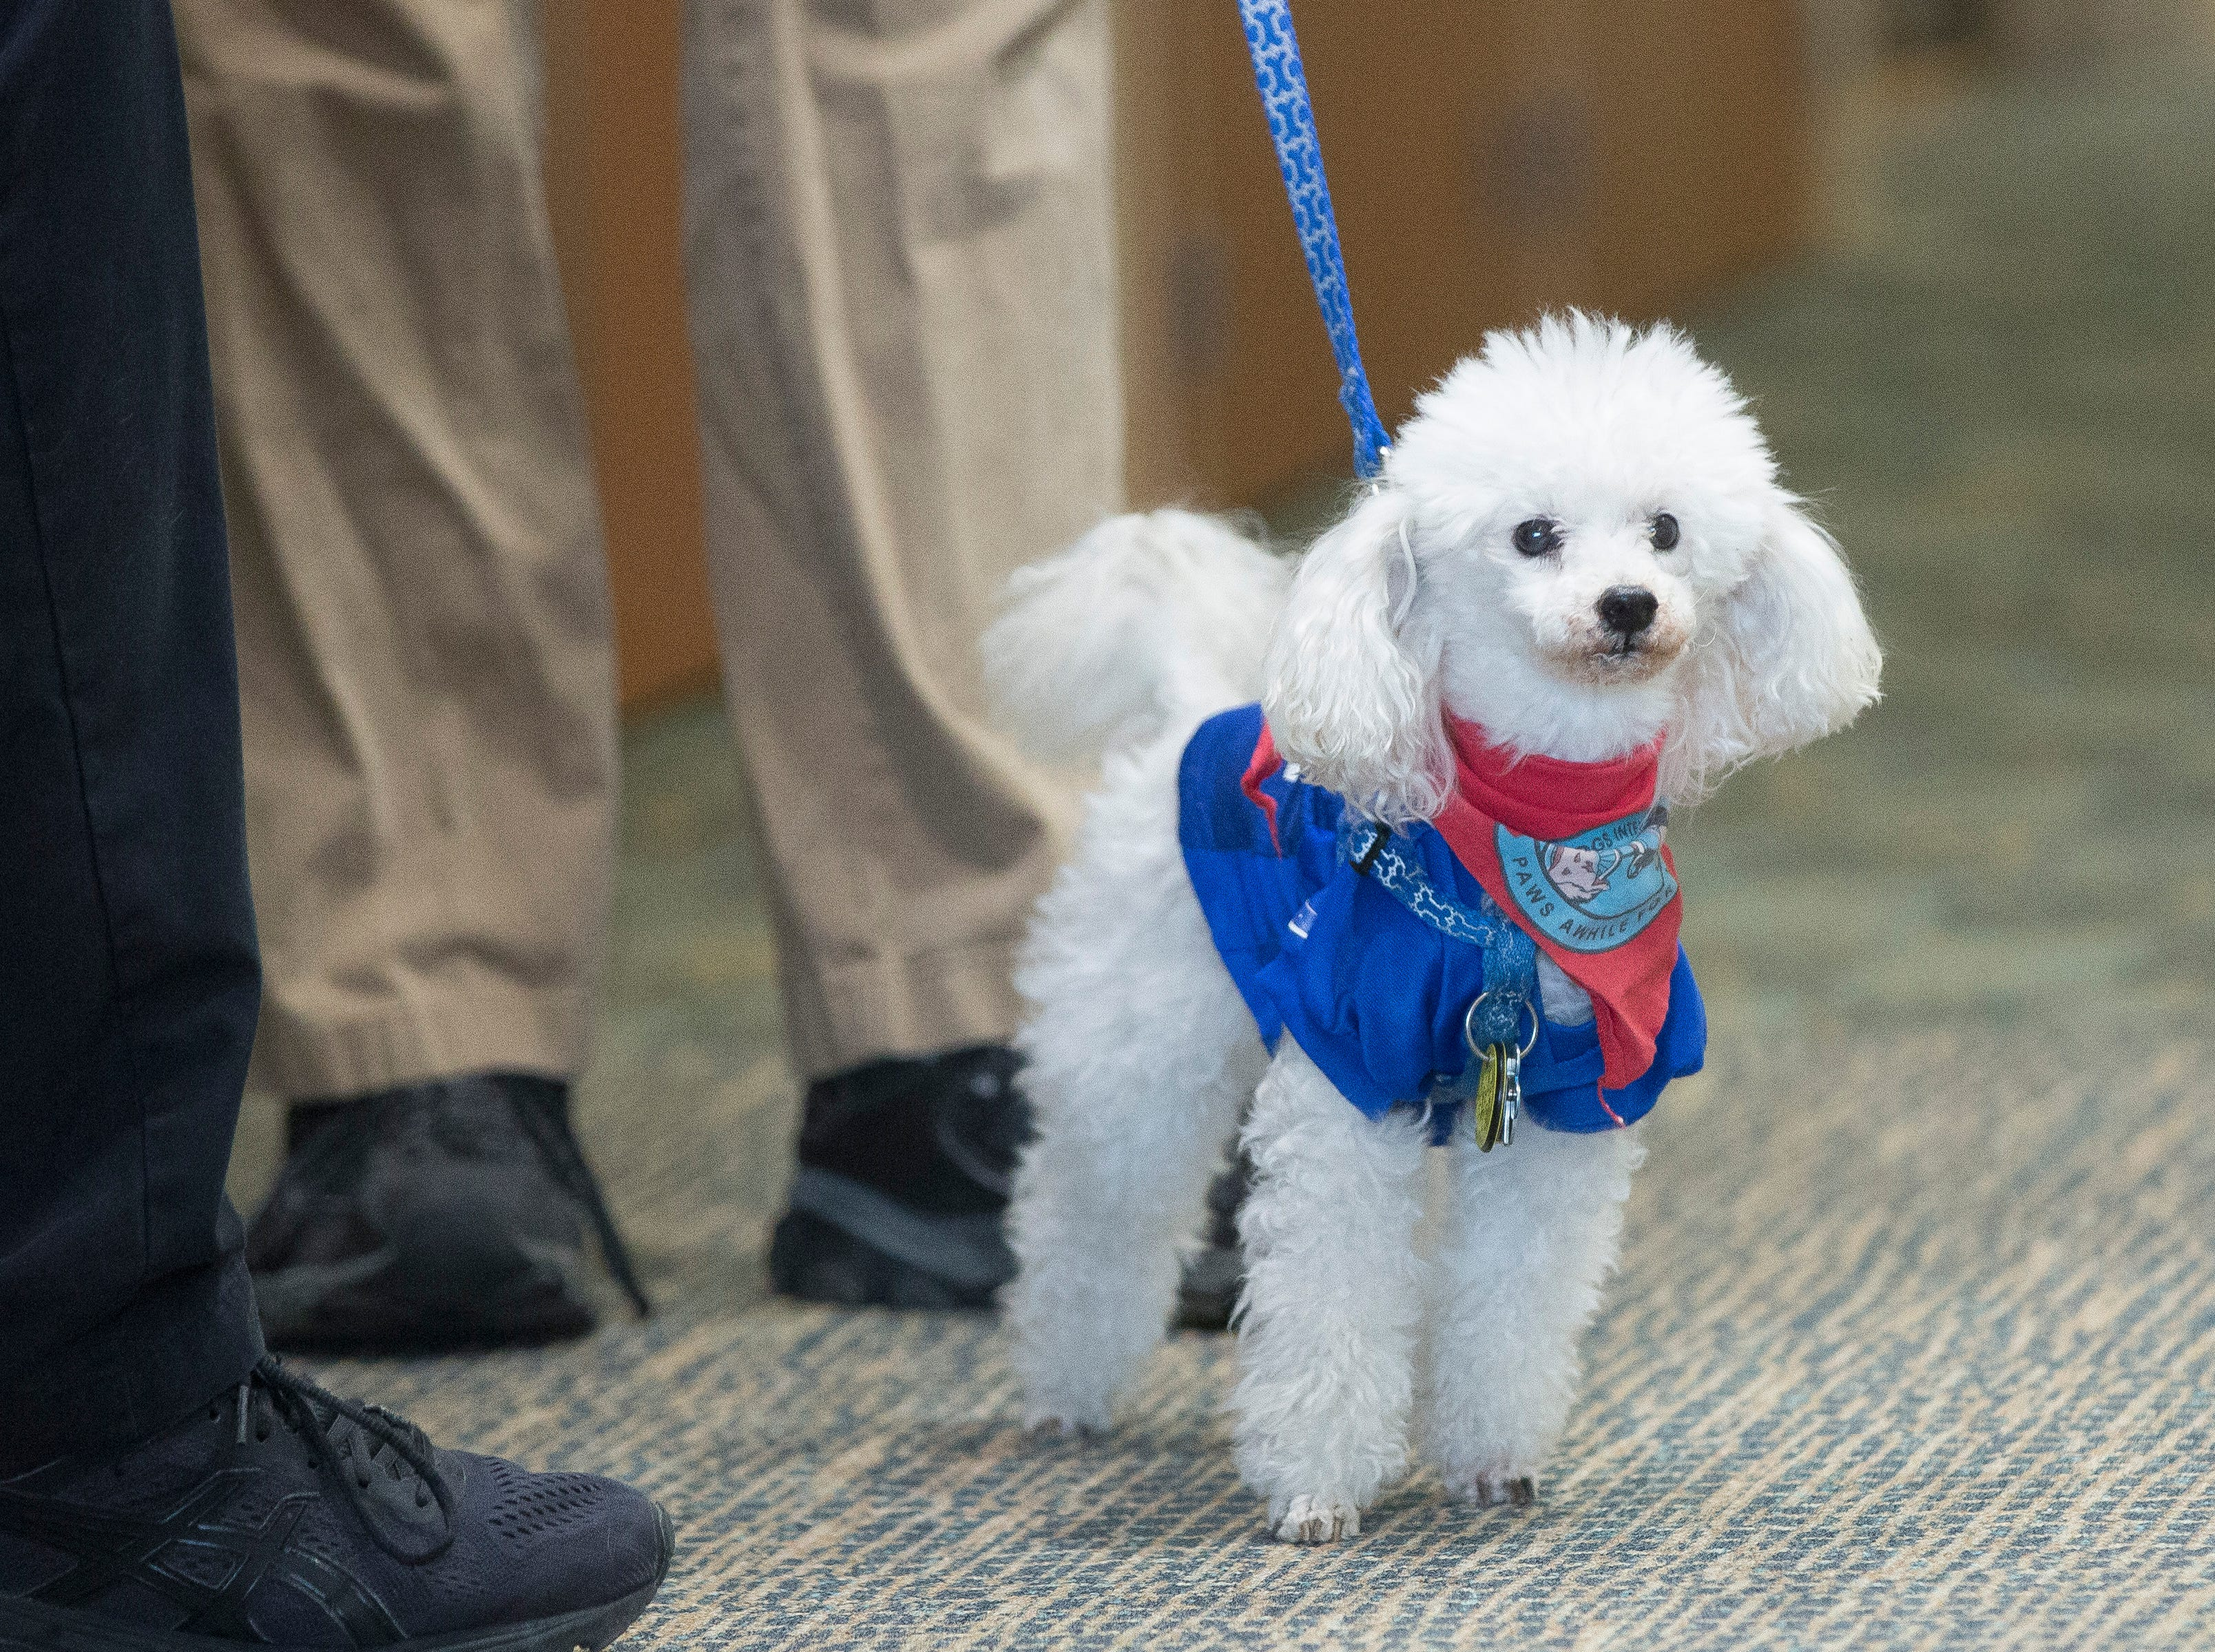 Fantasy, a comfort canine with IU Health Ball Memorial Hospital, works with his owner Scott Picha to cheer up patients.